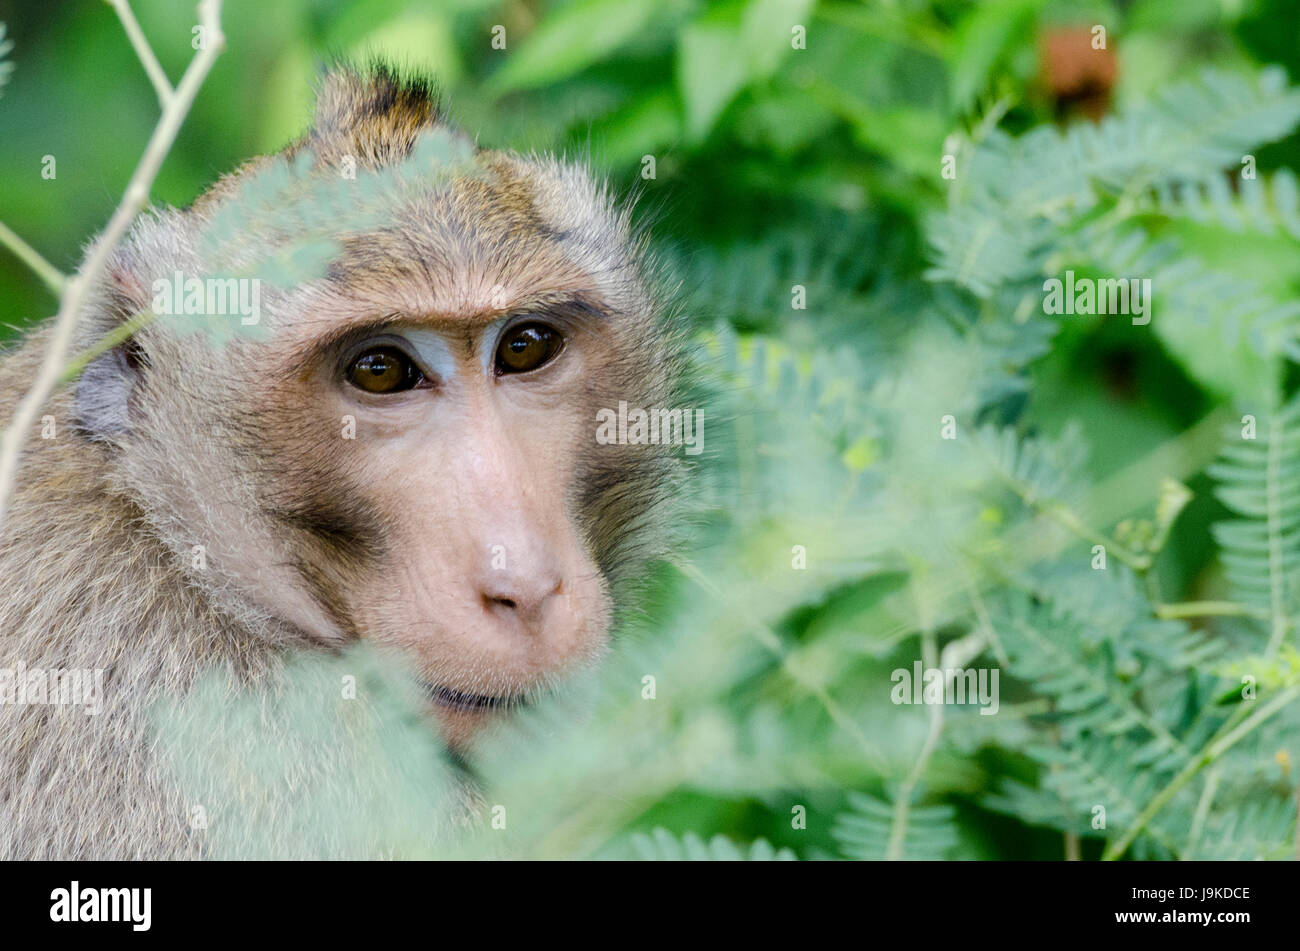 A lone adult crab-eating macaque (Macaca fascicularis) or long-tailed macaque hiding in tall bushes in Thailand - Stock Image